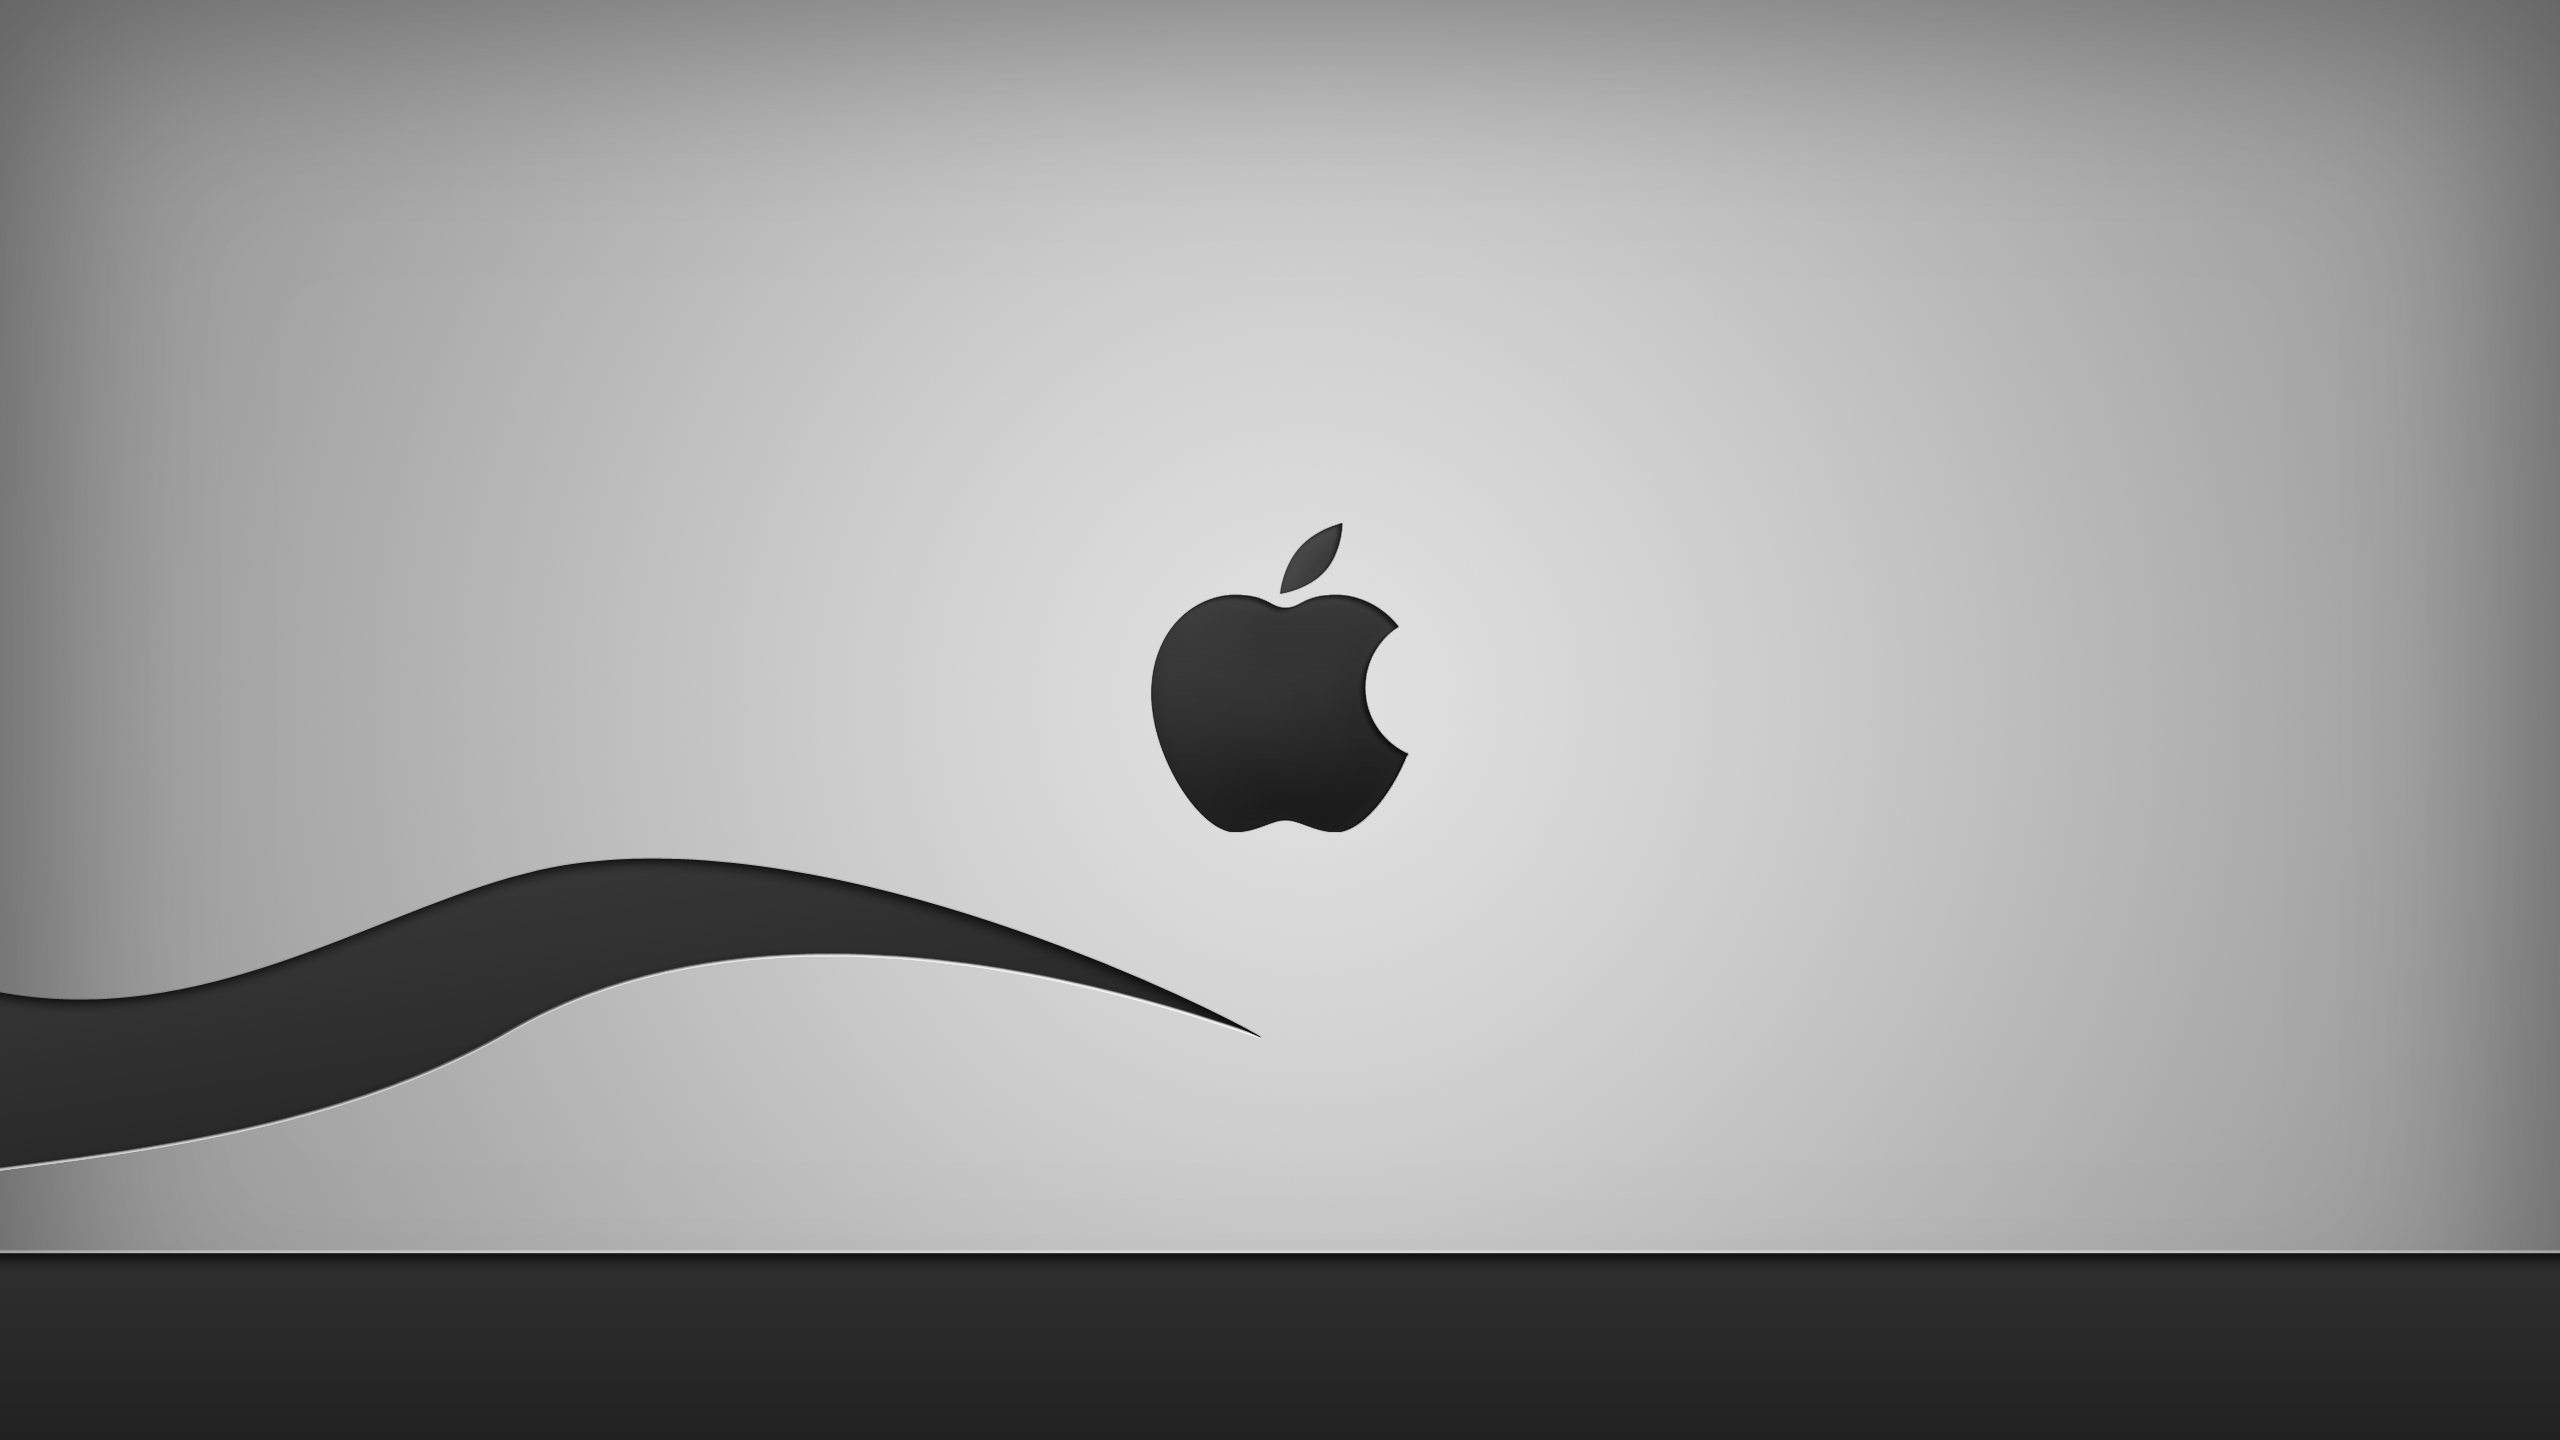 Simple iMac Wallpaper